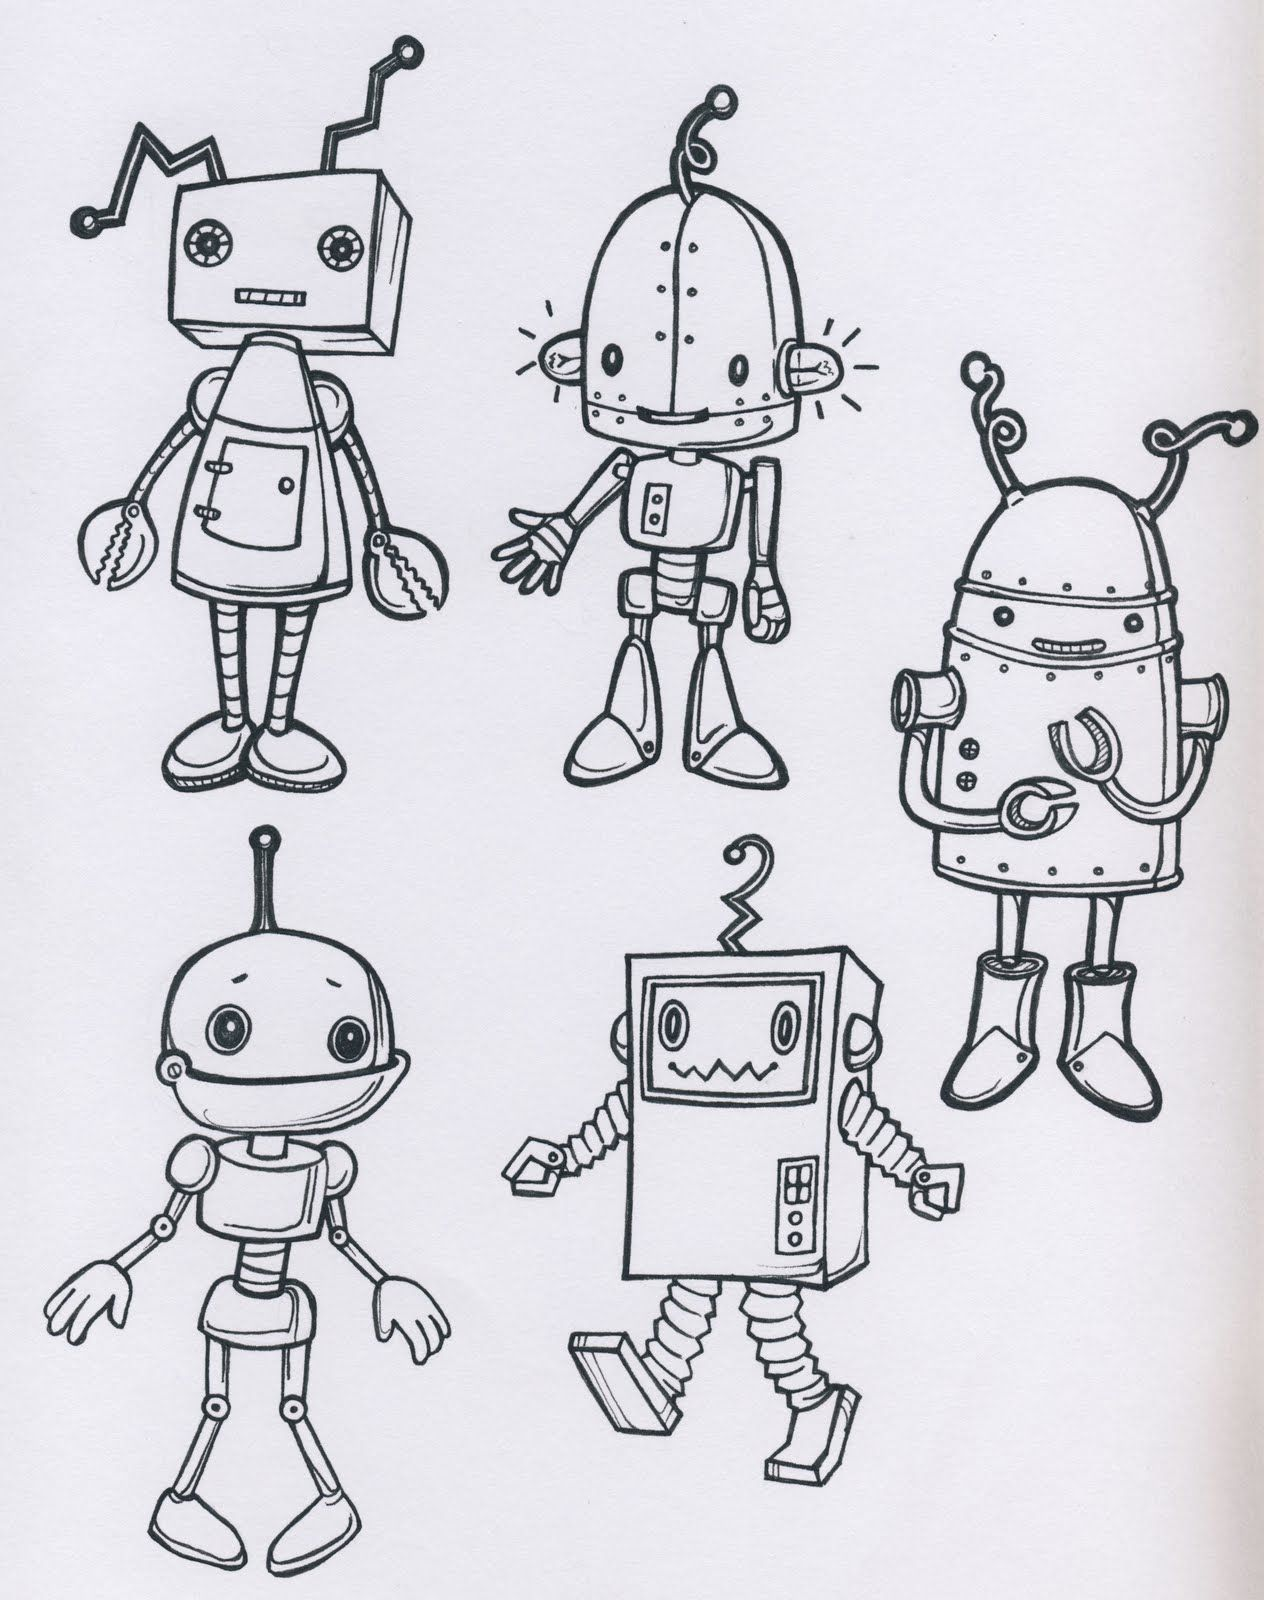 Uncategorized Draw A Robot robots robot nursery and doodles i never knew that liked drawing but they are so fun cause pretty much anything goes it has become our sunday ritual to draw robot